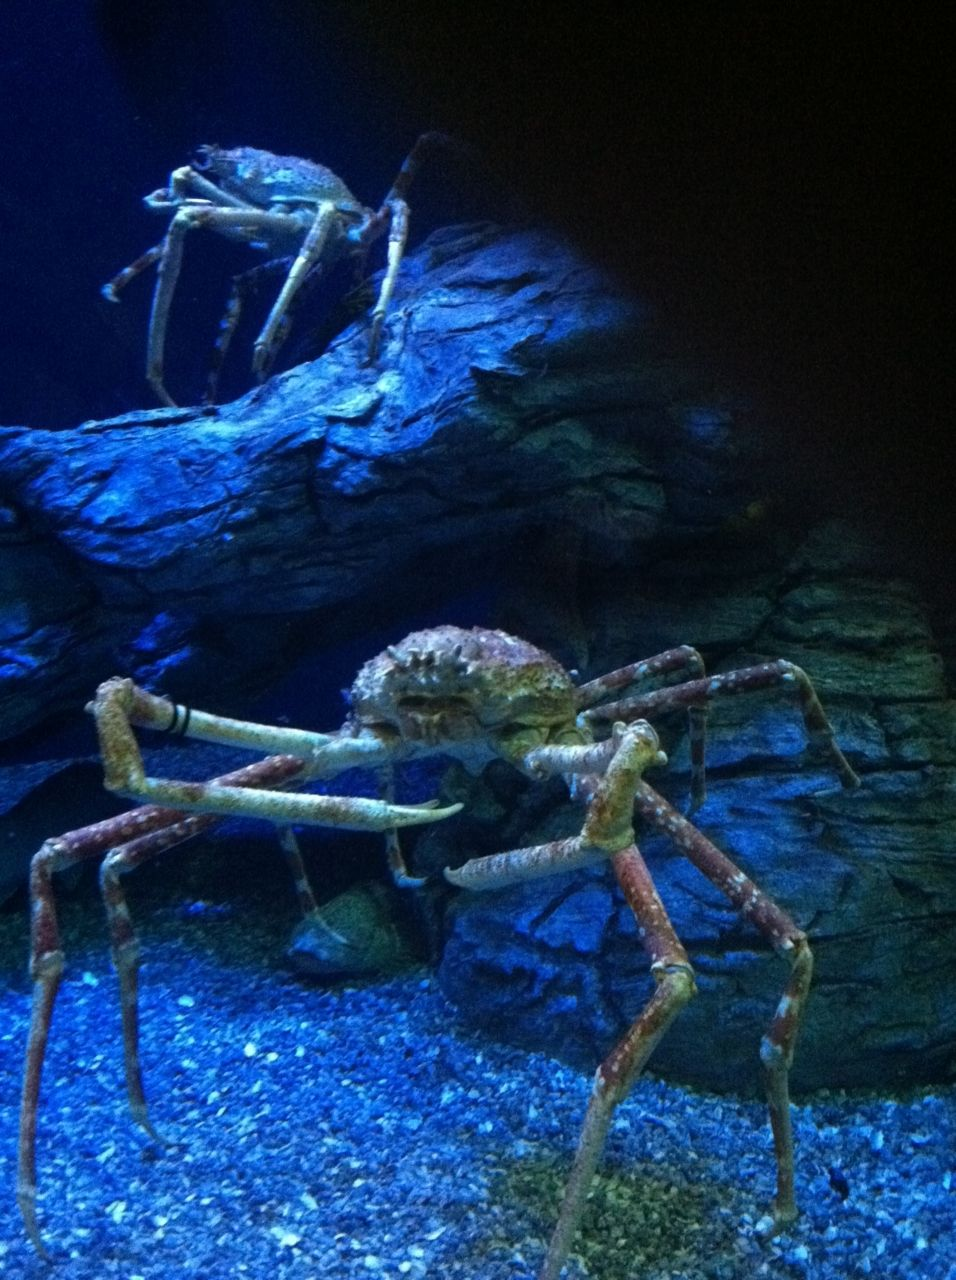 King Crabs - They look like a scene from an alien movie